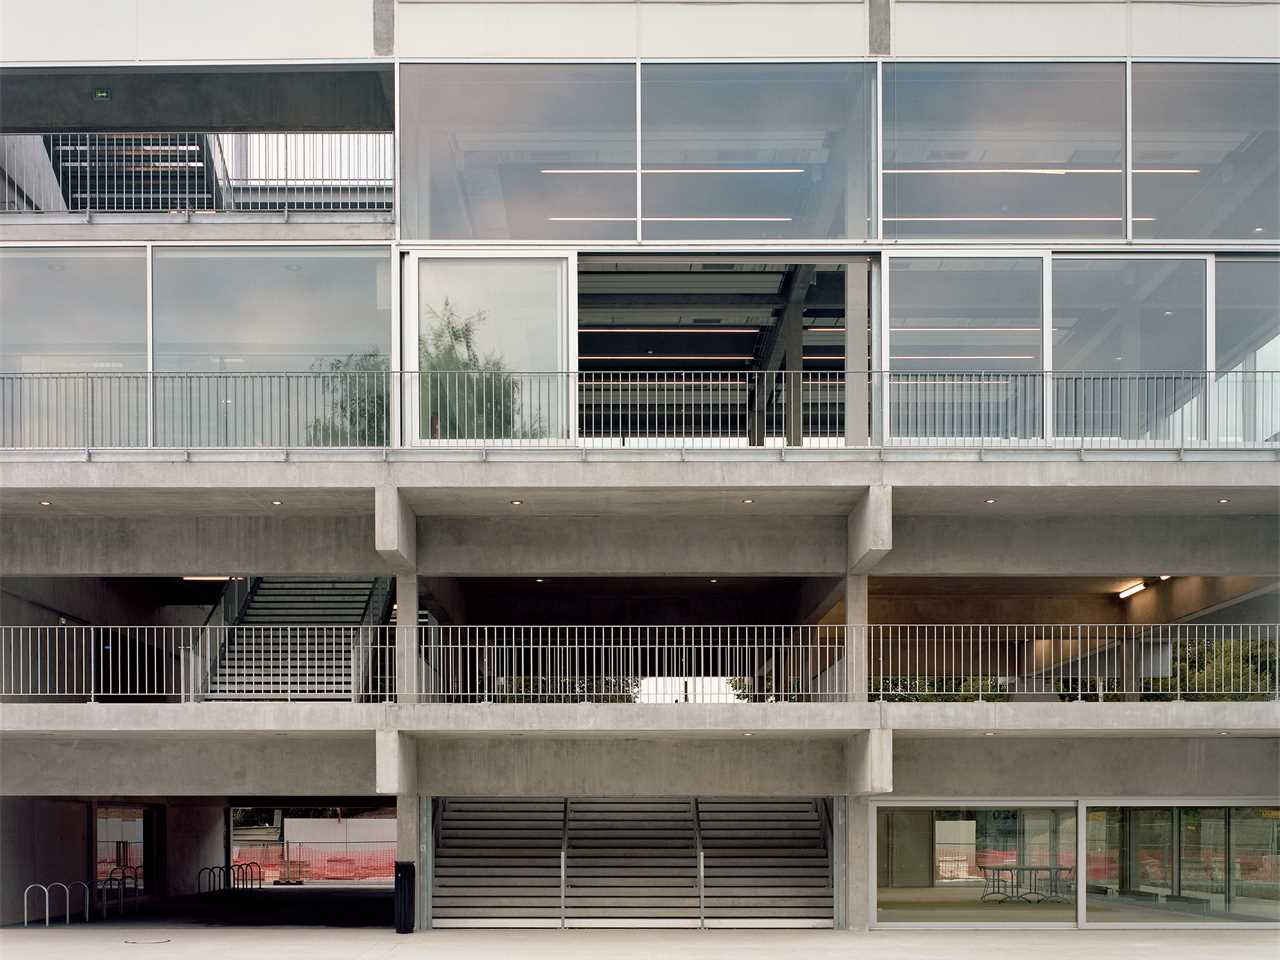 public condenser: low-cost flexible university building, paris